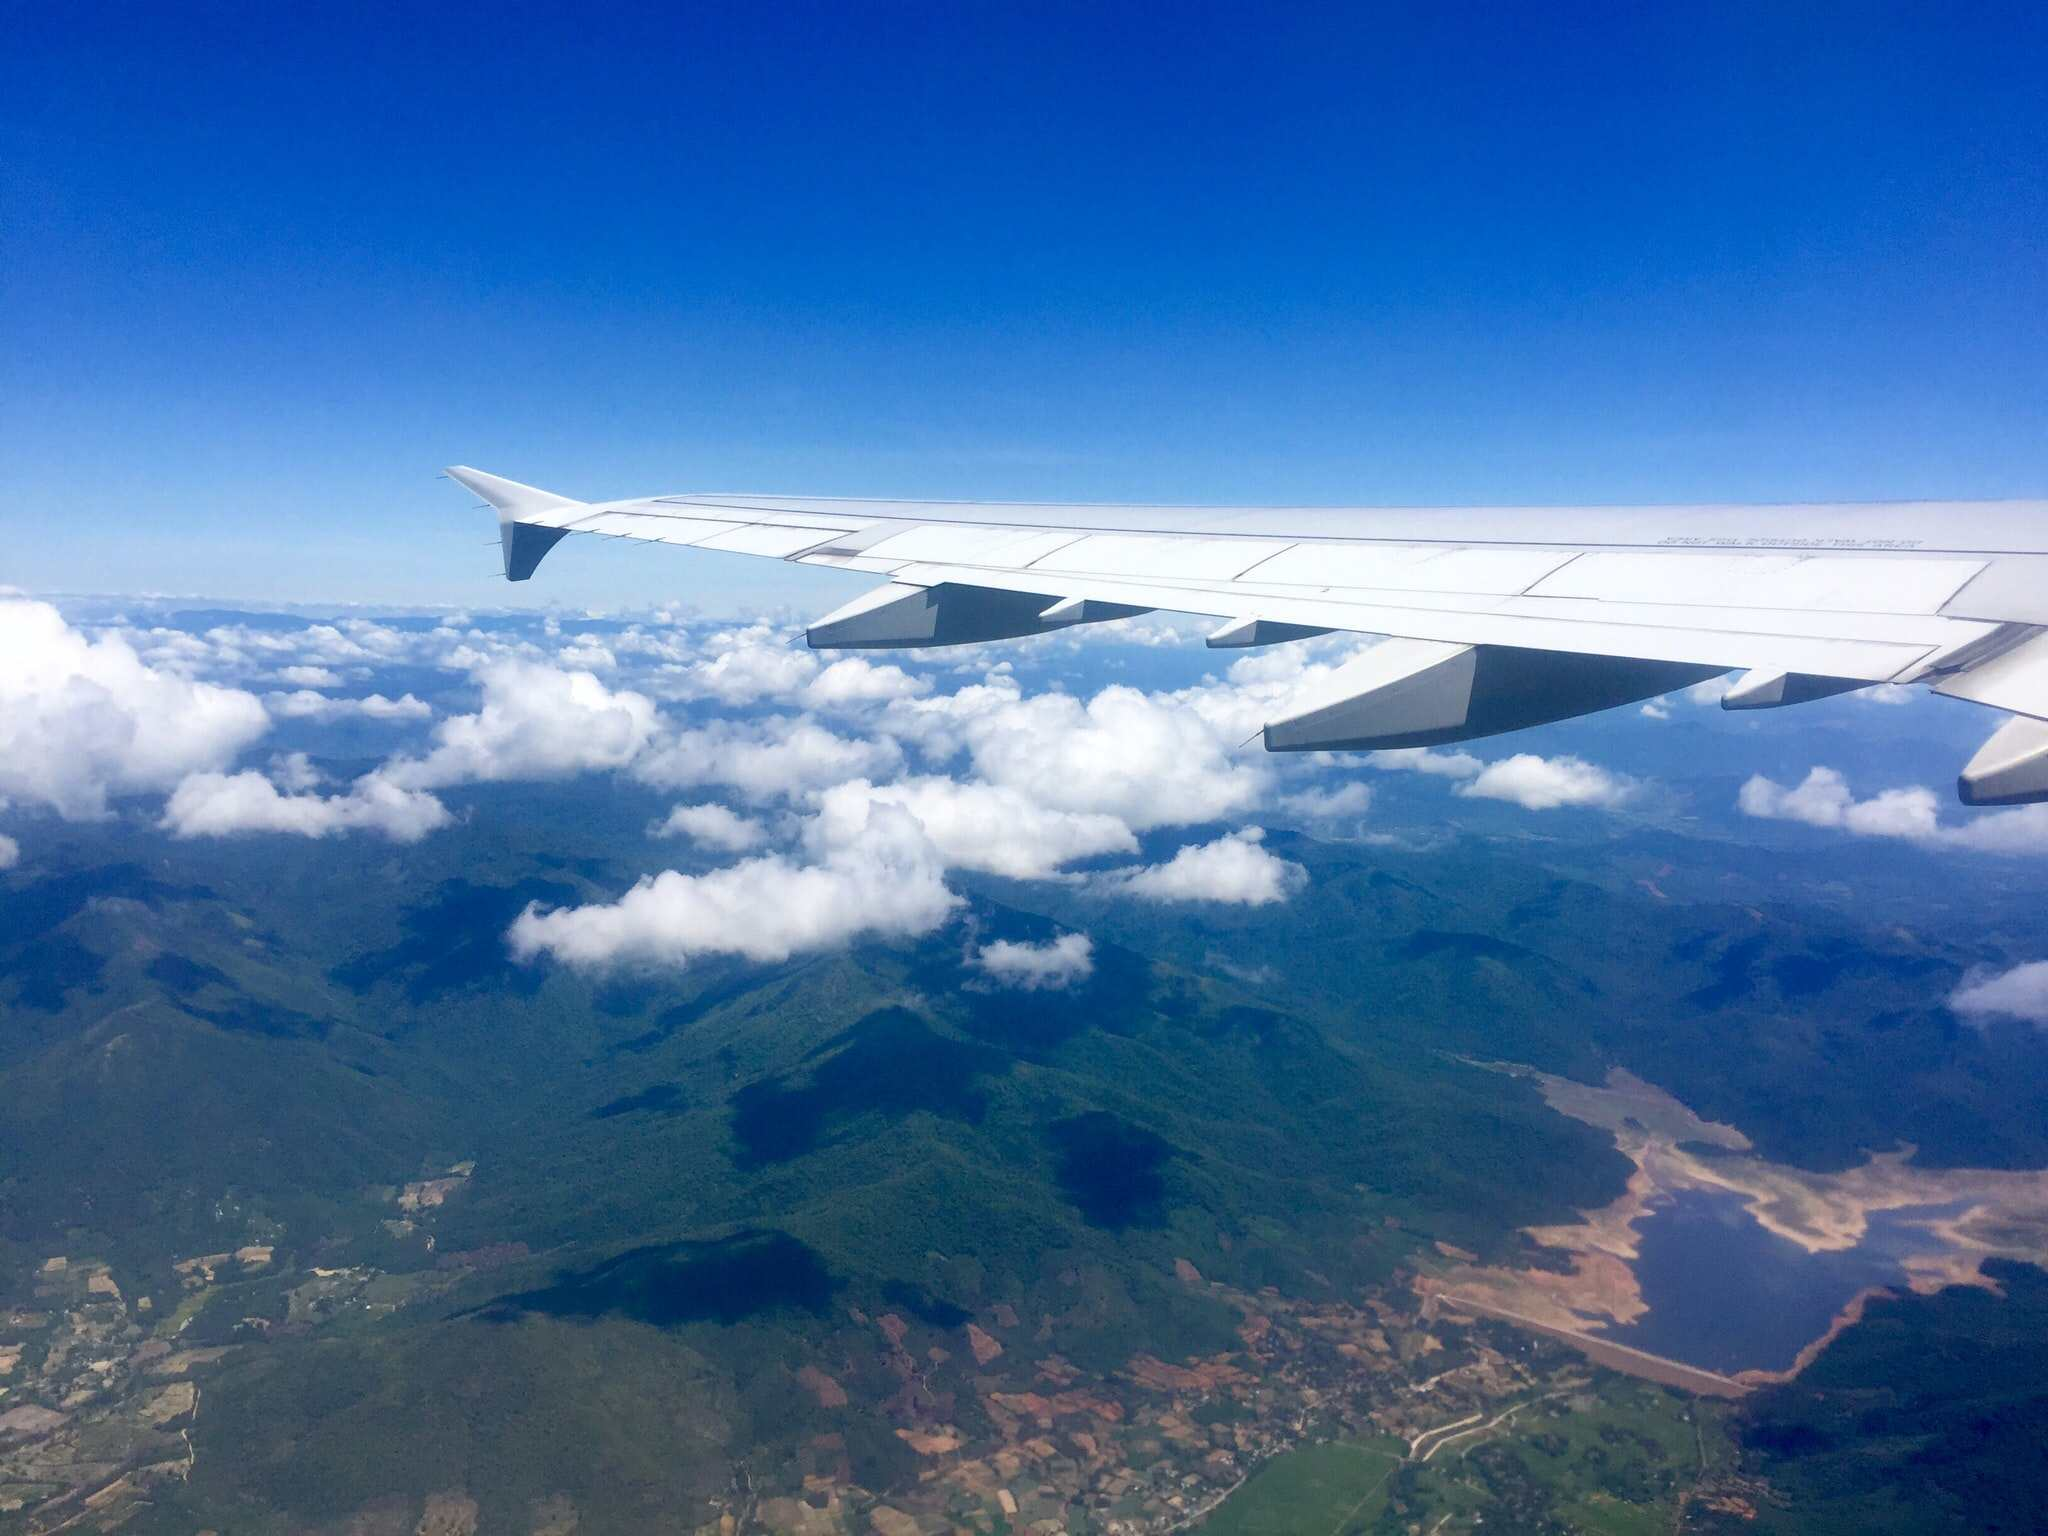 Getting from Hoi An to Hanoi by plane